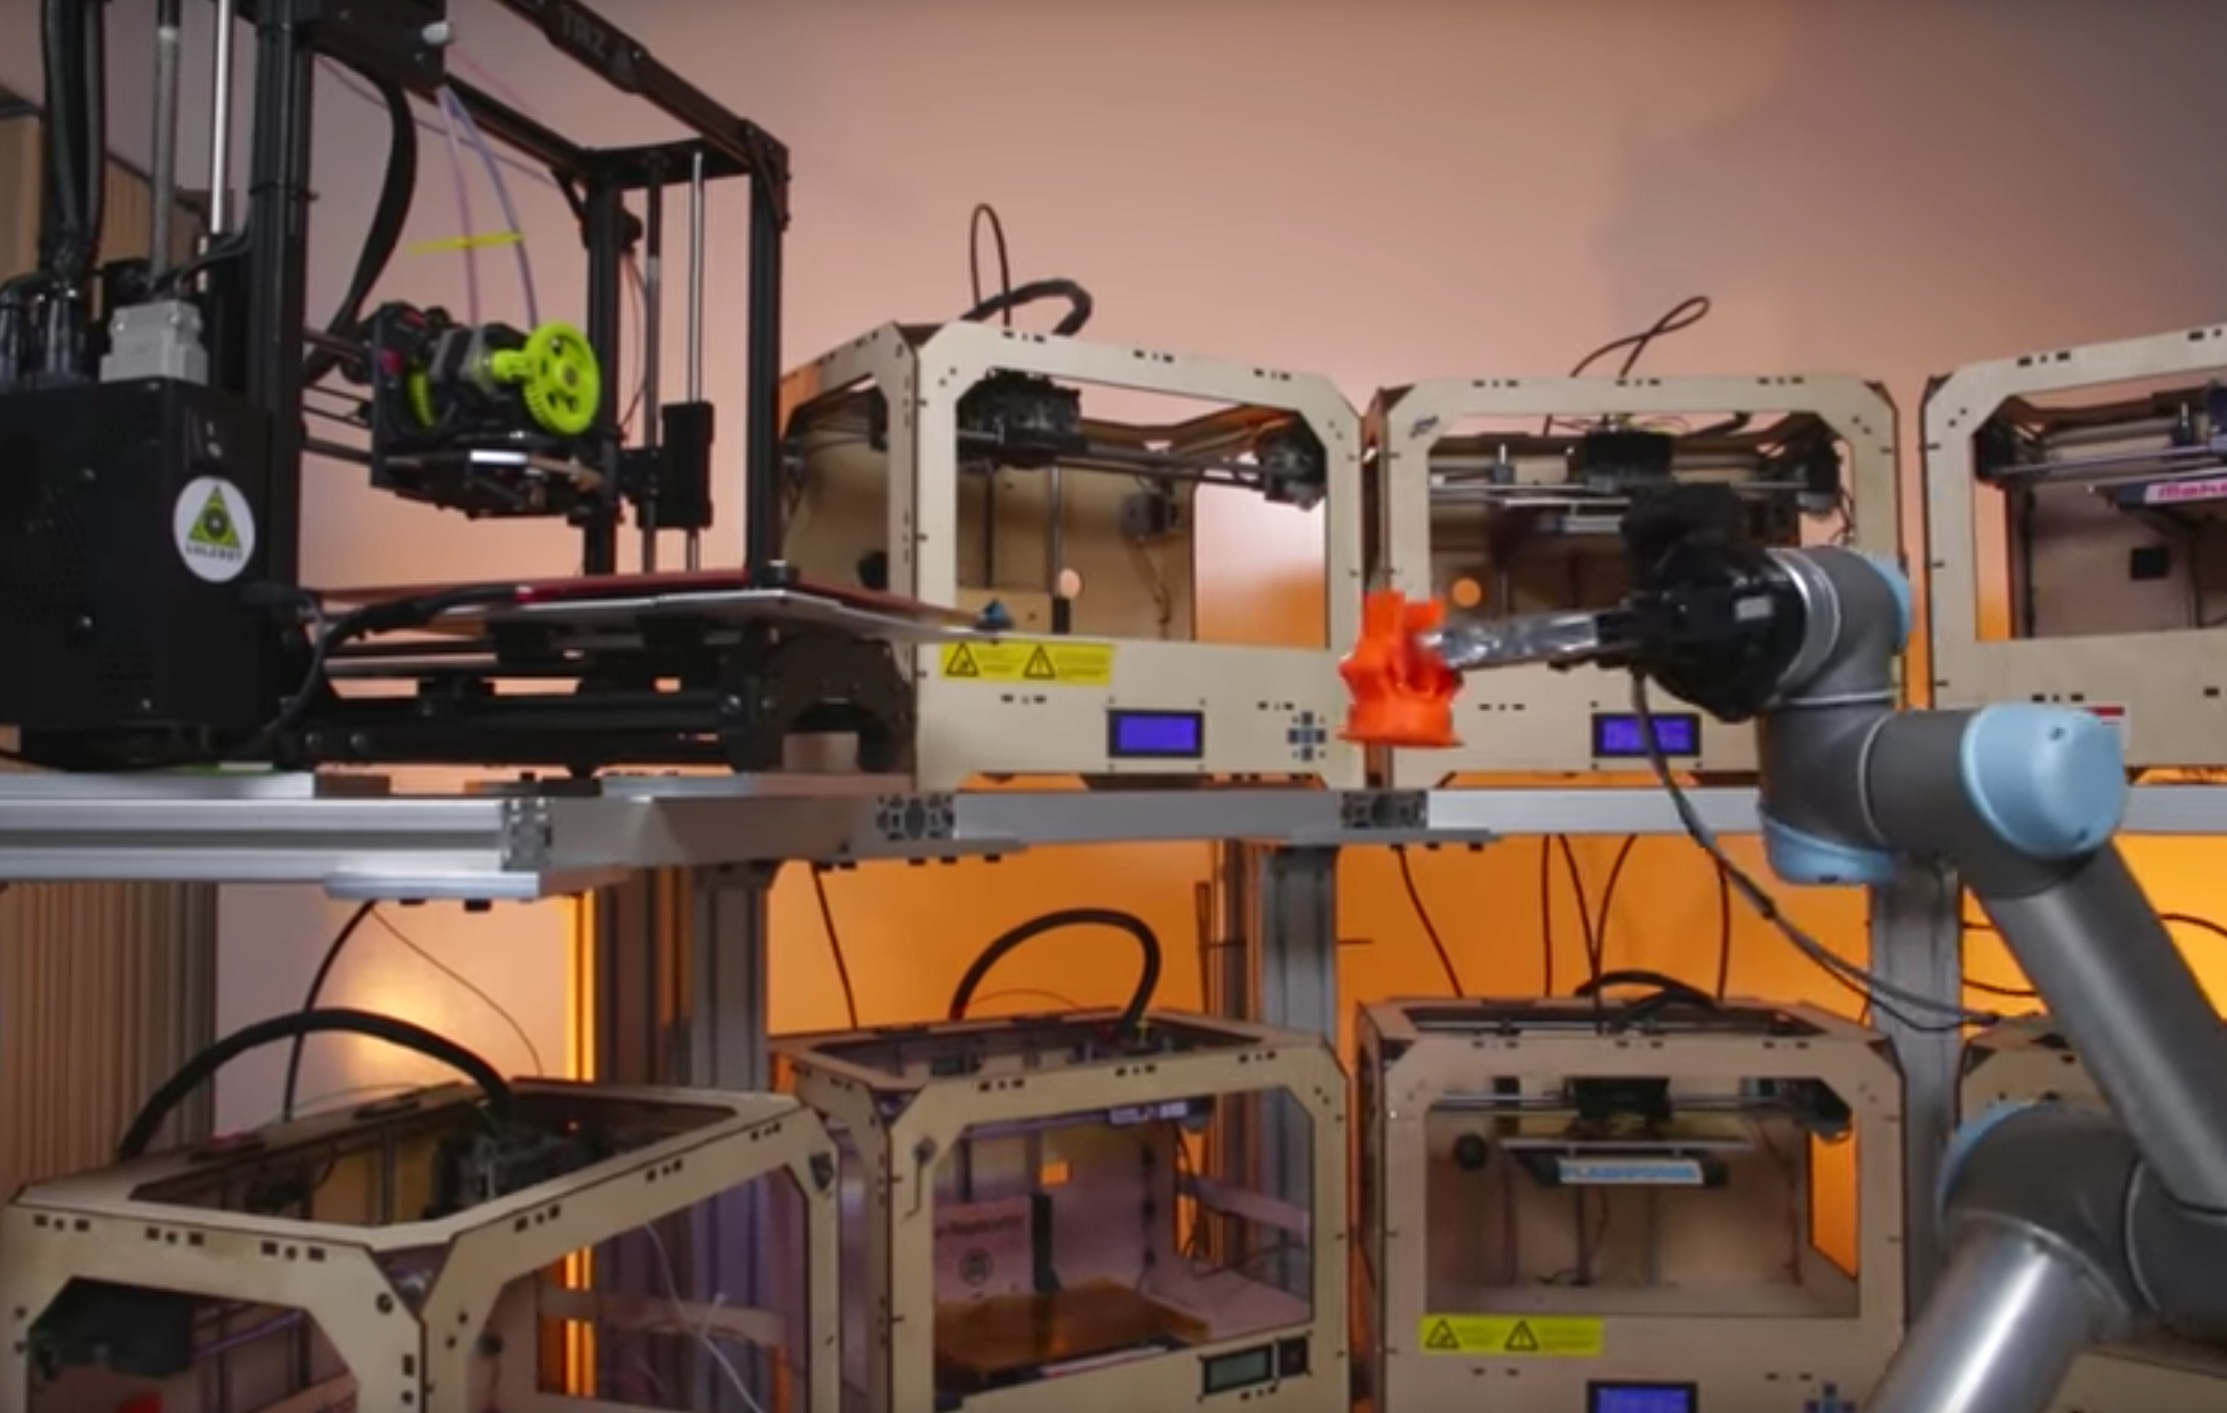 Tend.ai's automated 3D printer operations system